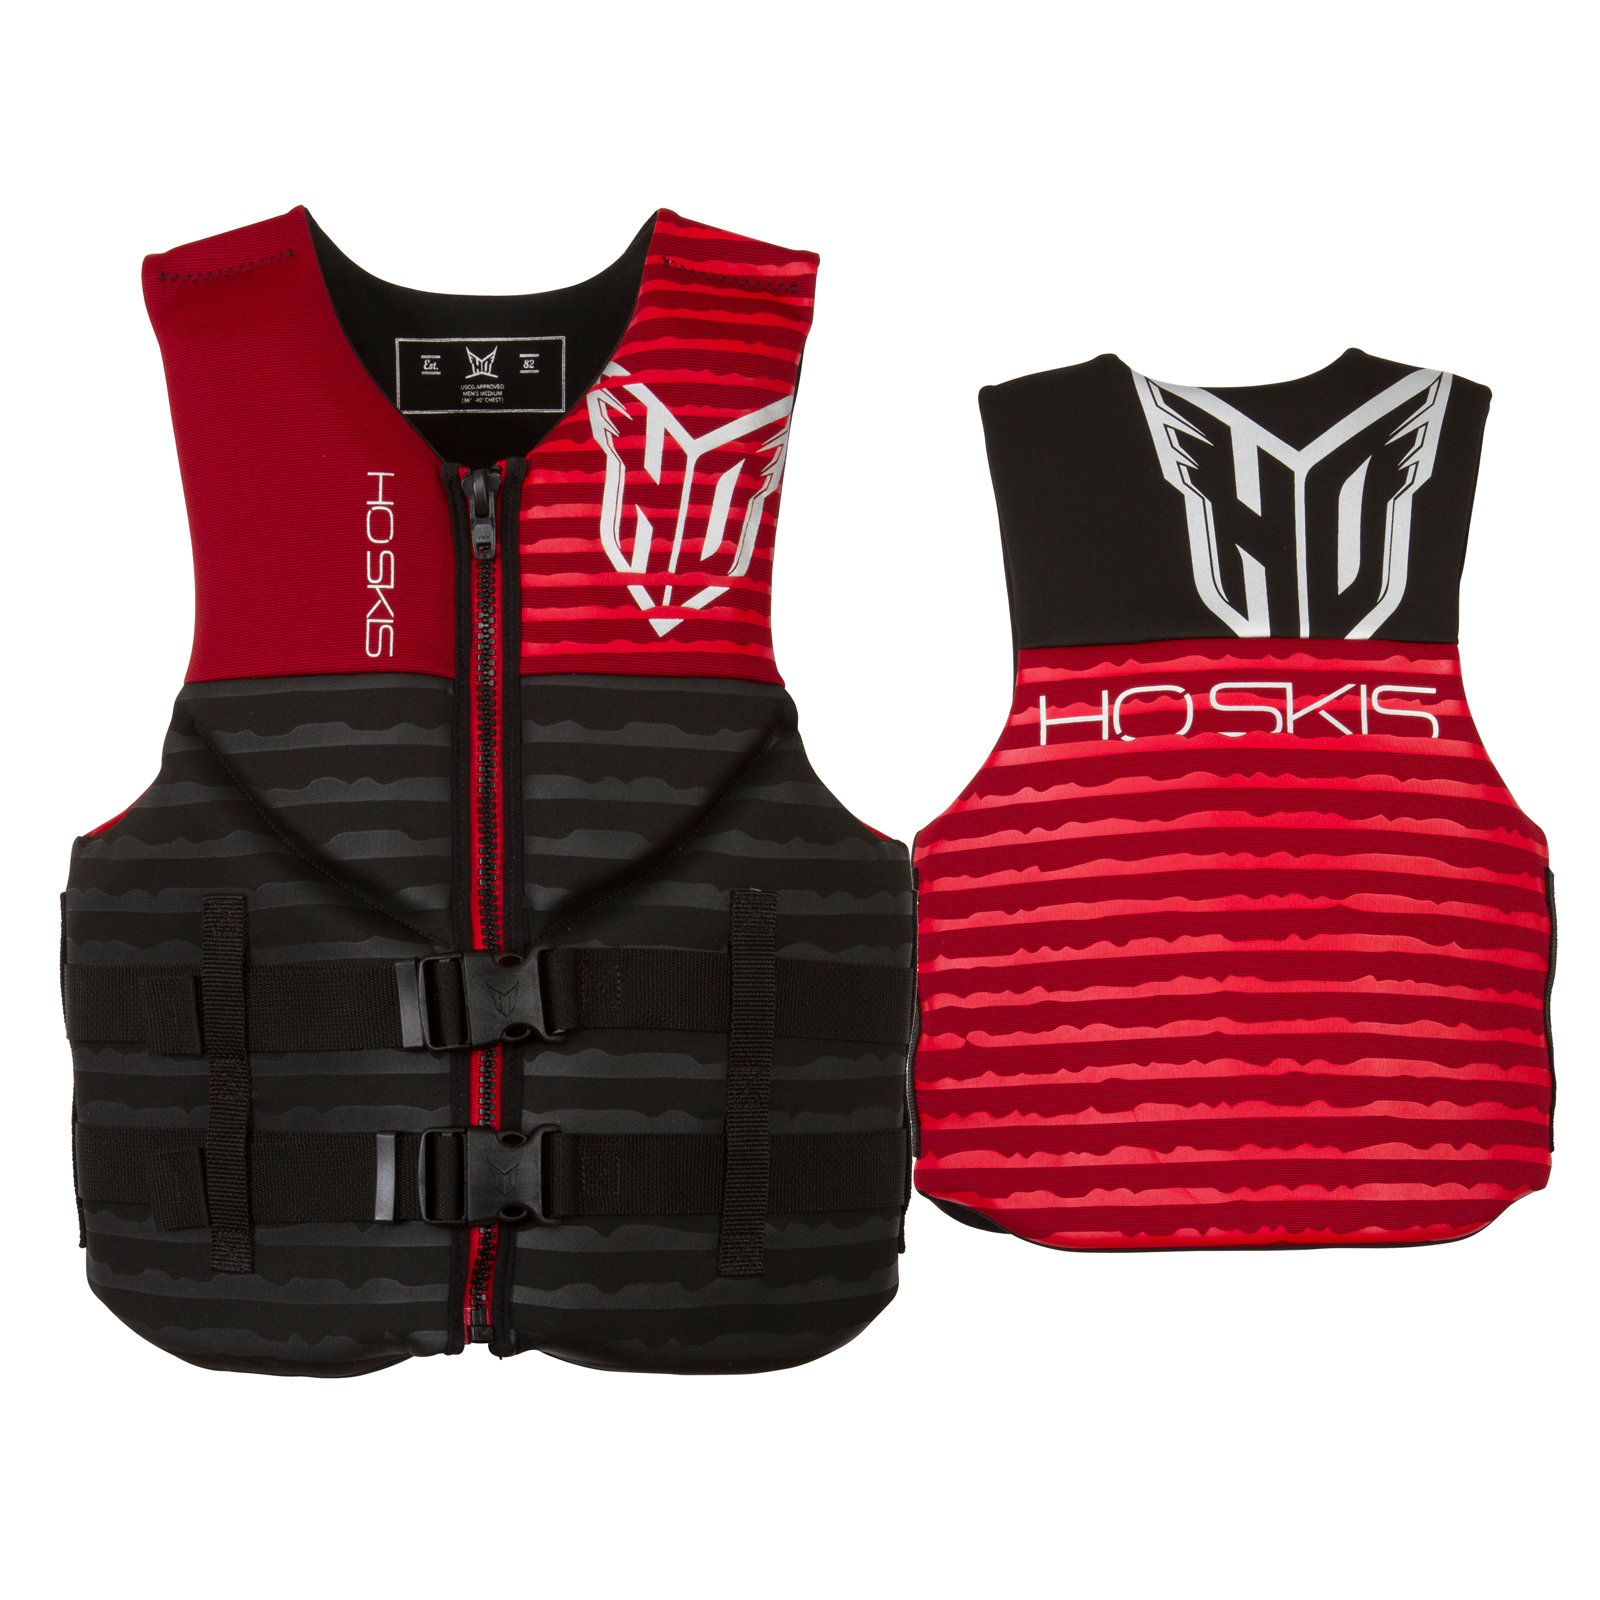 PURSUIT NEO LIFE VEST HO SPORTS 2018